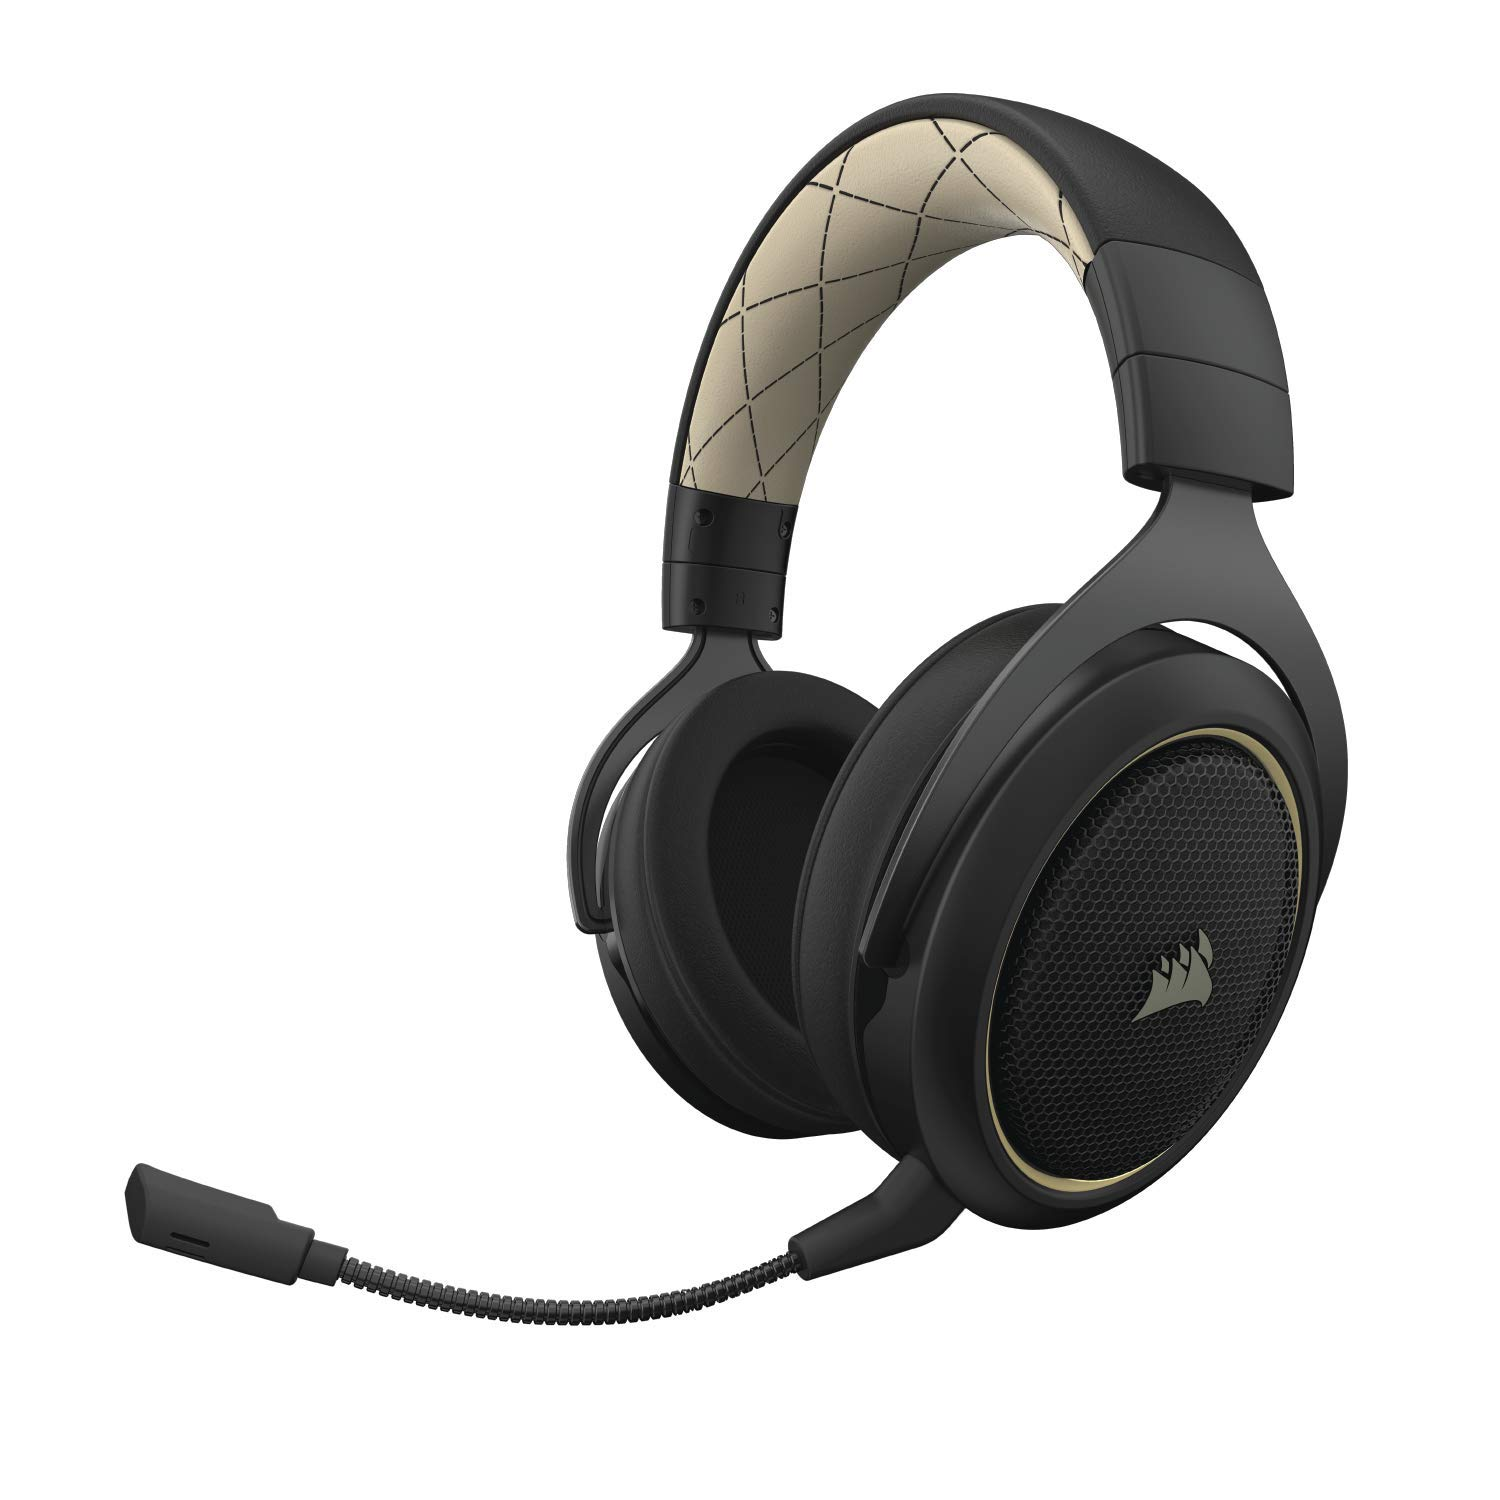 CORSAIR HS70 SE Wireless - 7 1 Surround Sound Gaming Headset - Discord  Certified Headphones - Special Edition